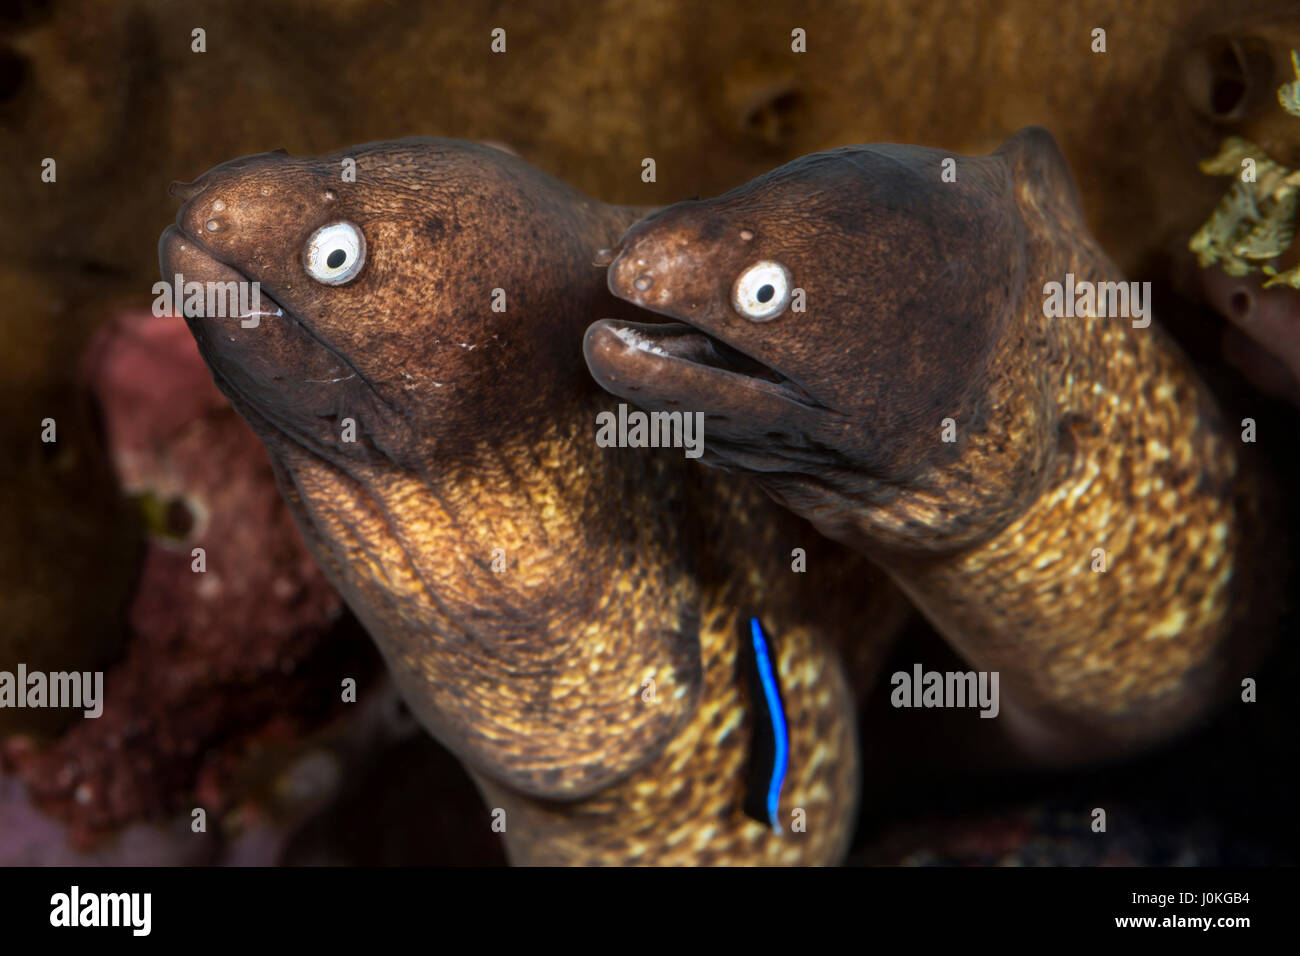 Pair of White-eyed Morays, Siderea prosopeion, Bali, Indonesia - Stock Image